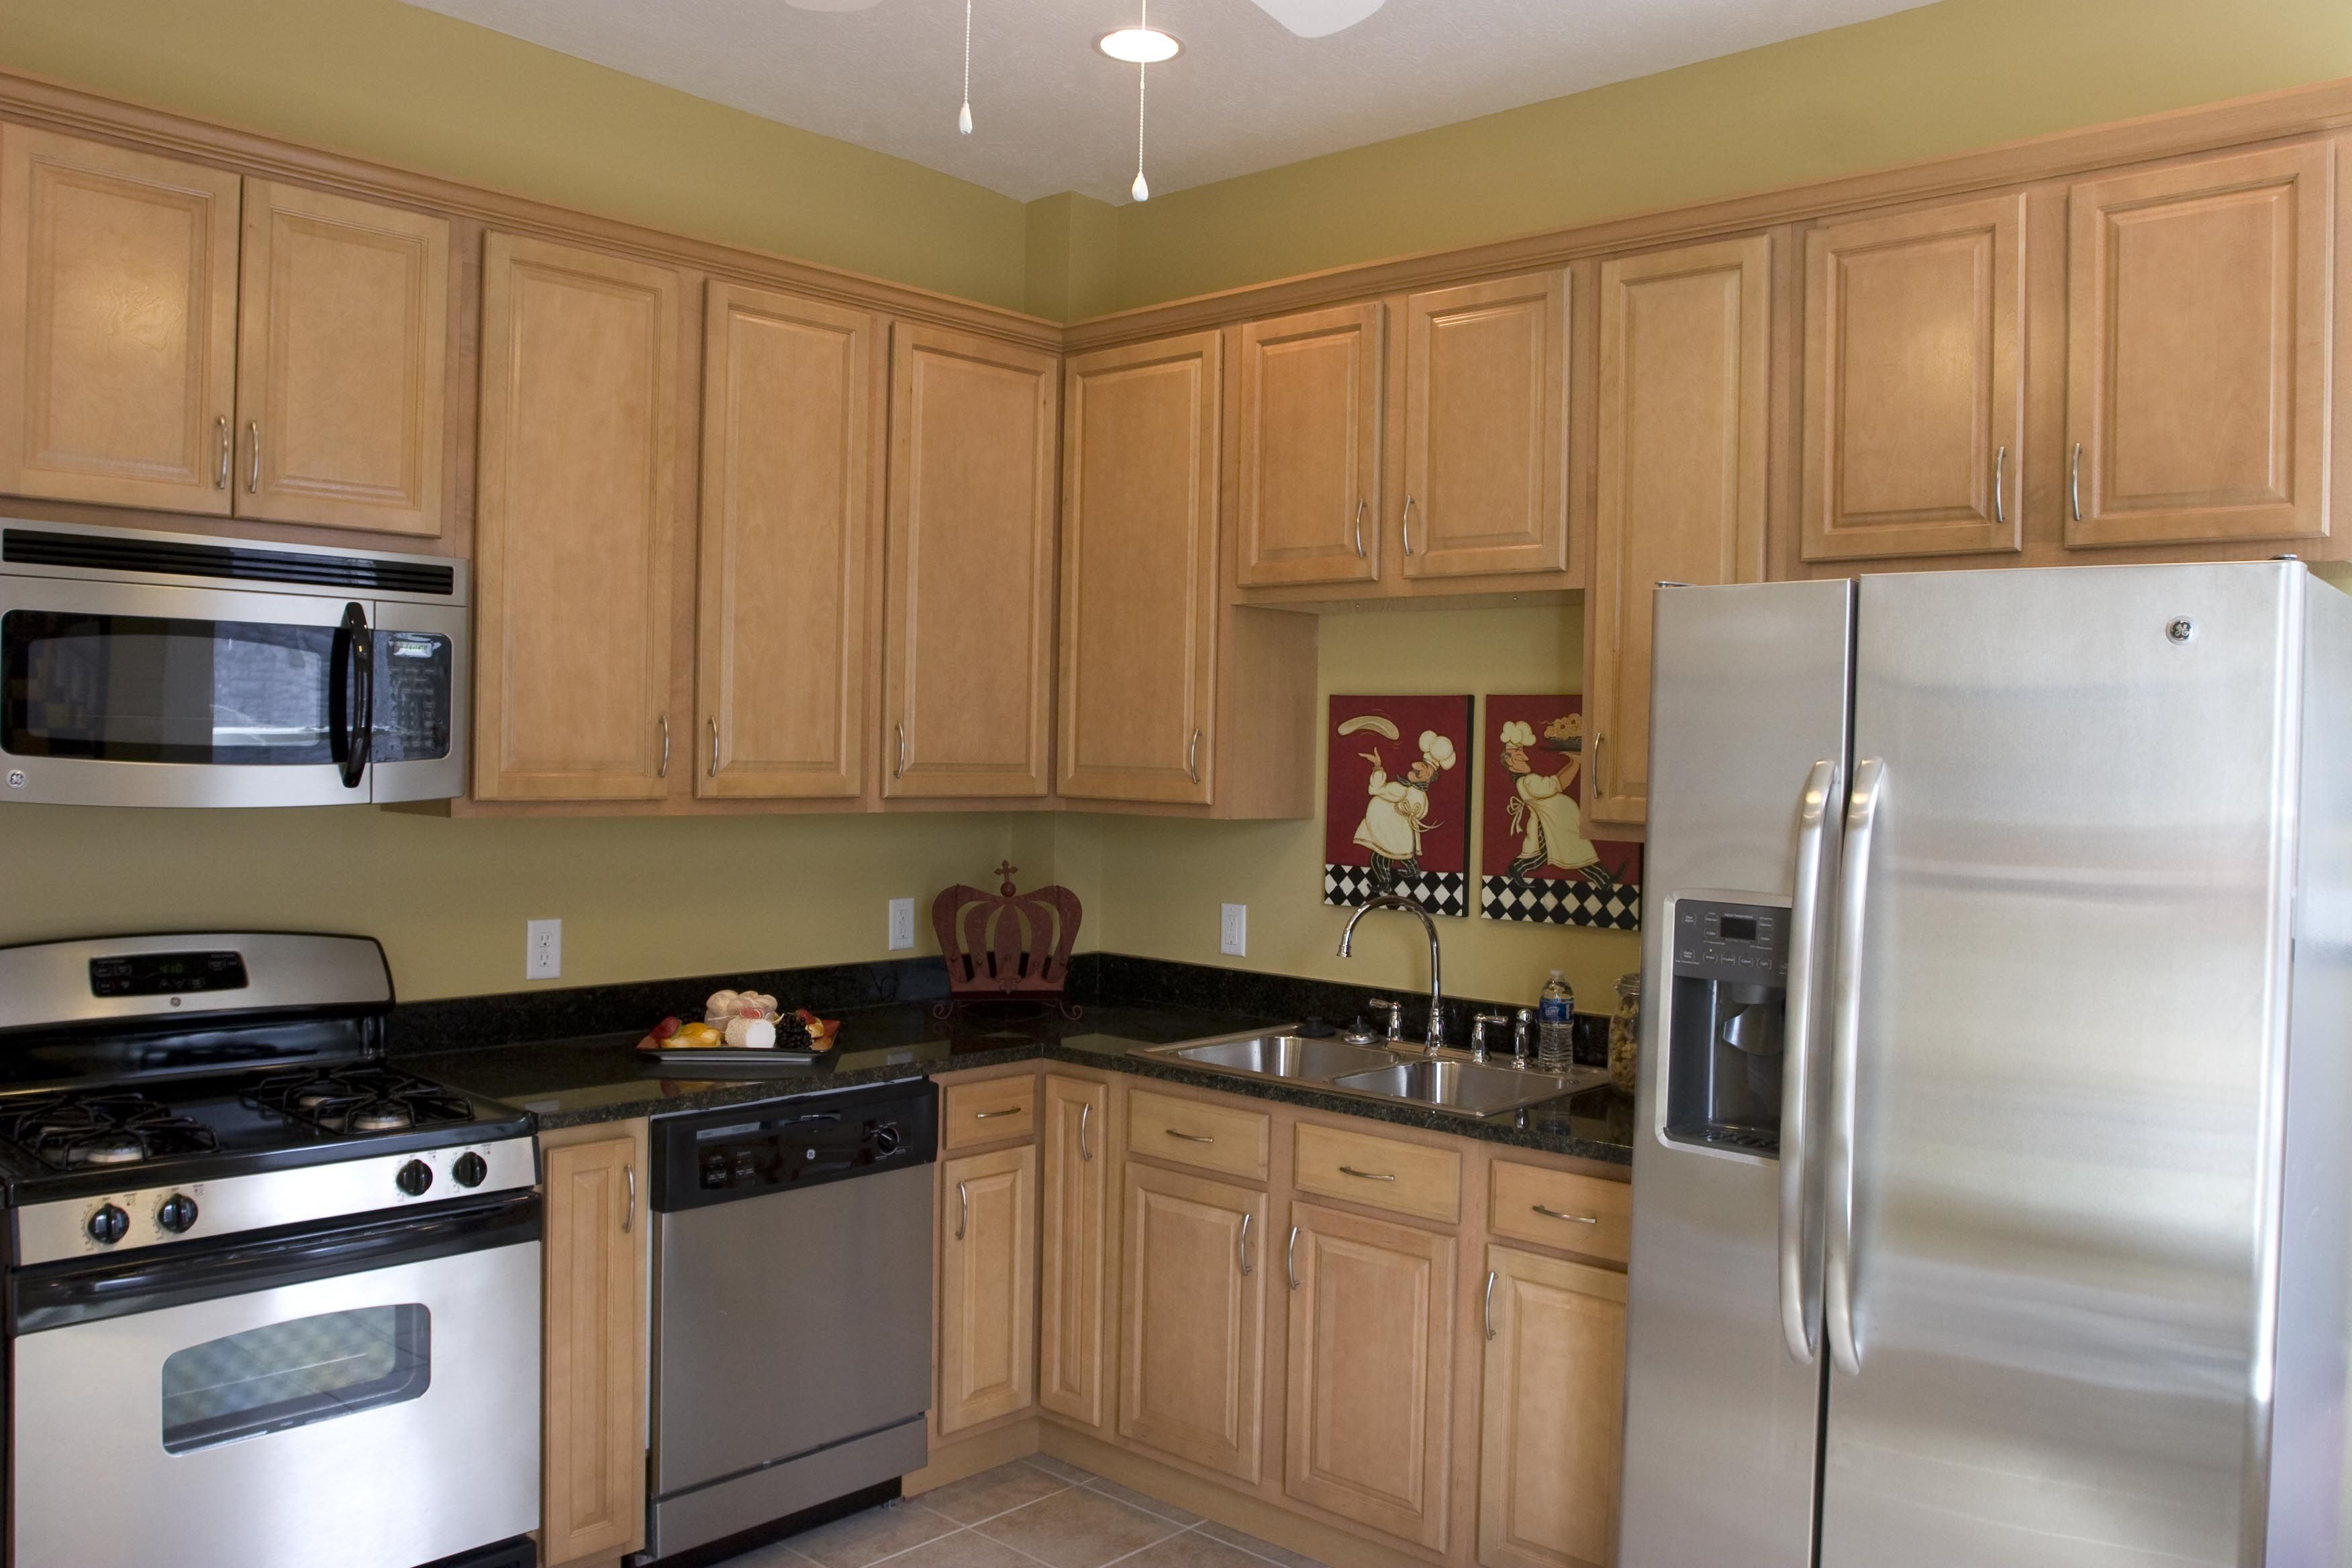 birch kitchen cabinets | all wood maple or birch kitchen cabinets